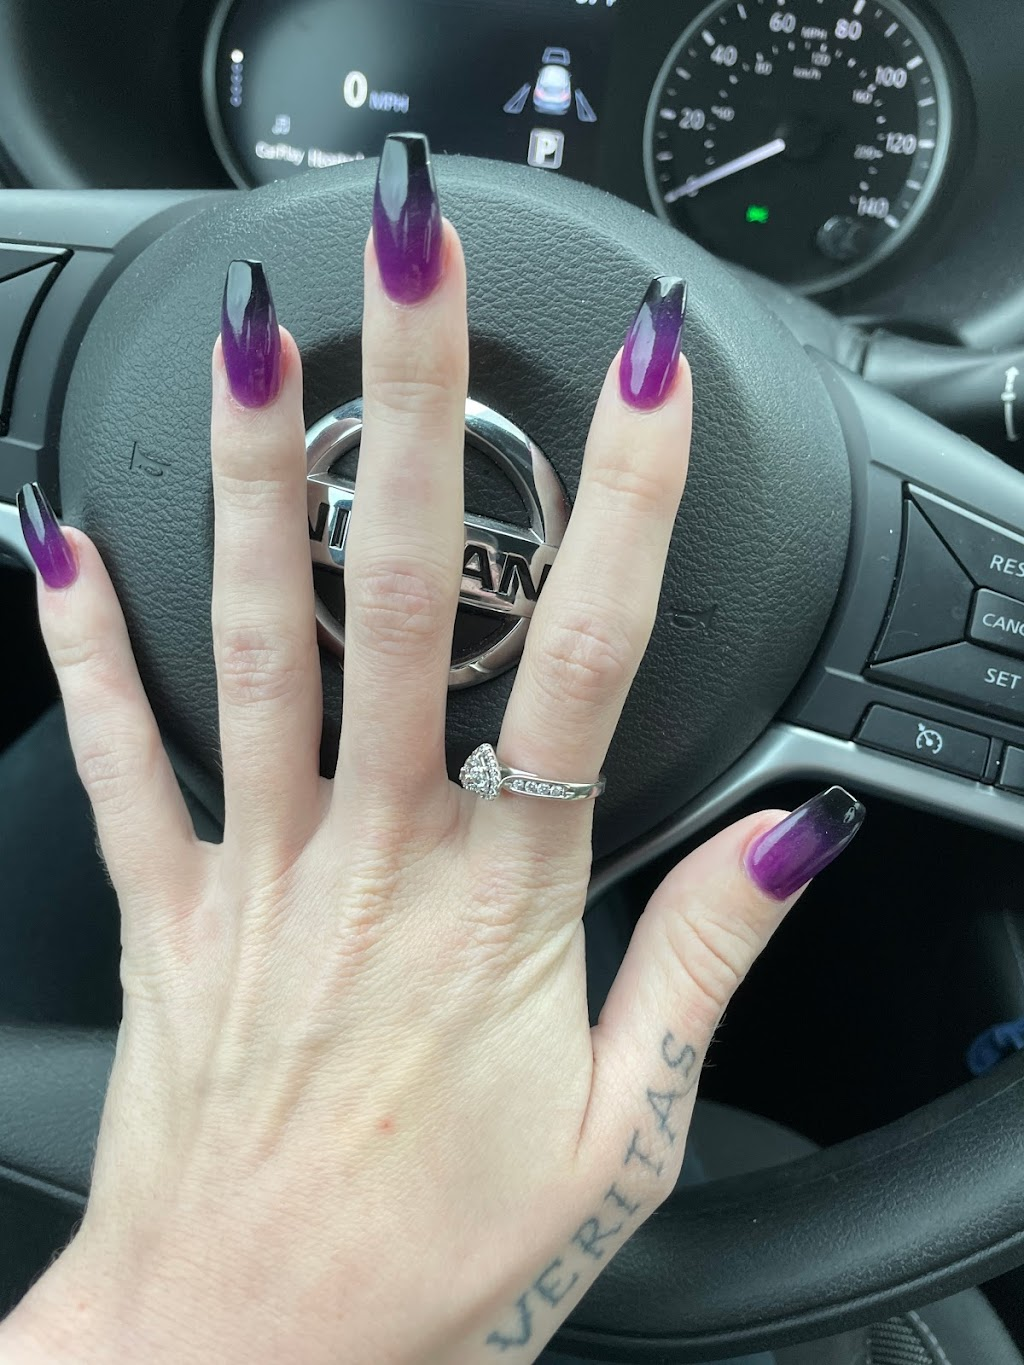 Reverie Nail and Spa - hair care    Photo 3 of 10   Address: 4613 W Bailey Boswell Rd, Fort Worth, TX 76179, USA   Phone: (682) 224-5688